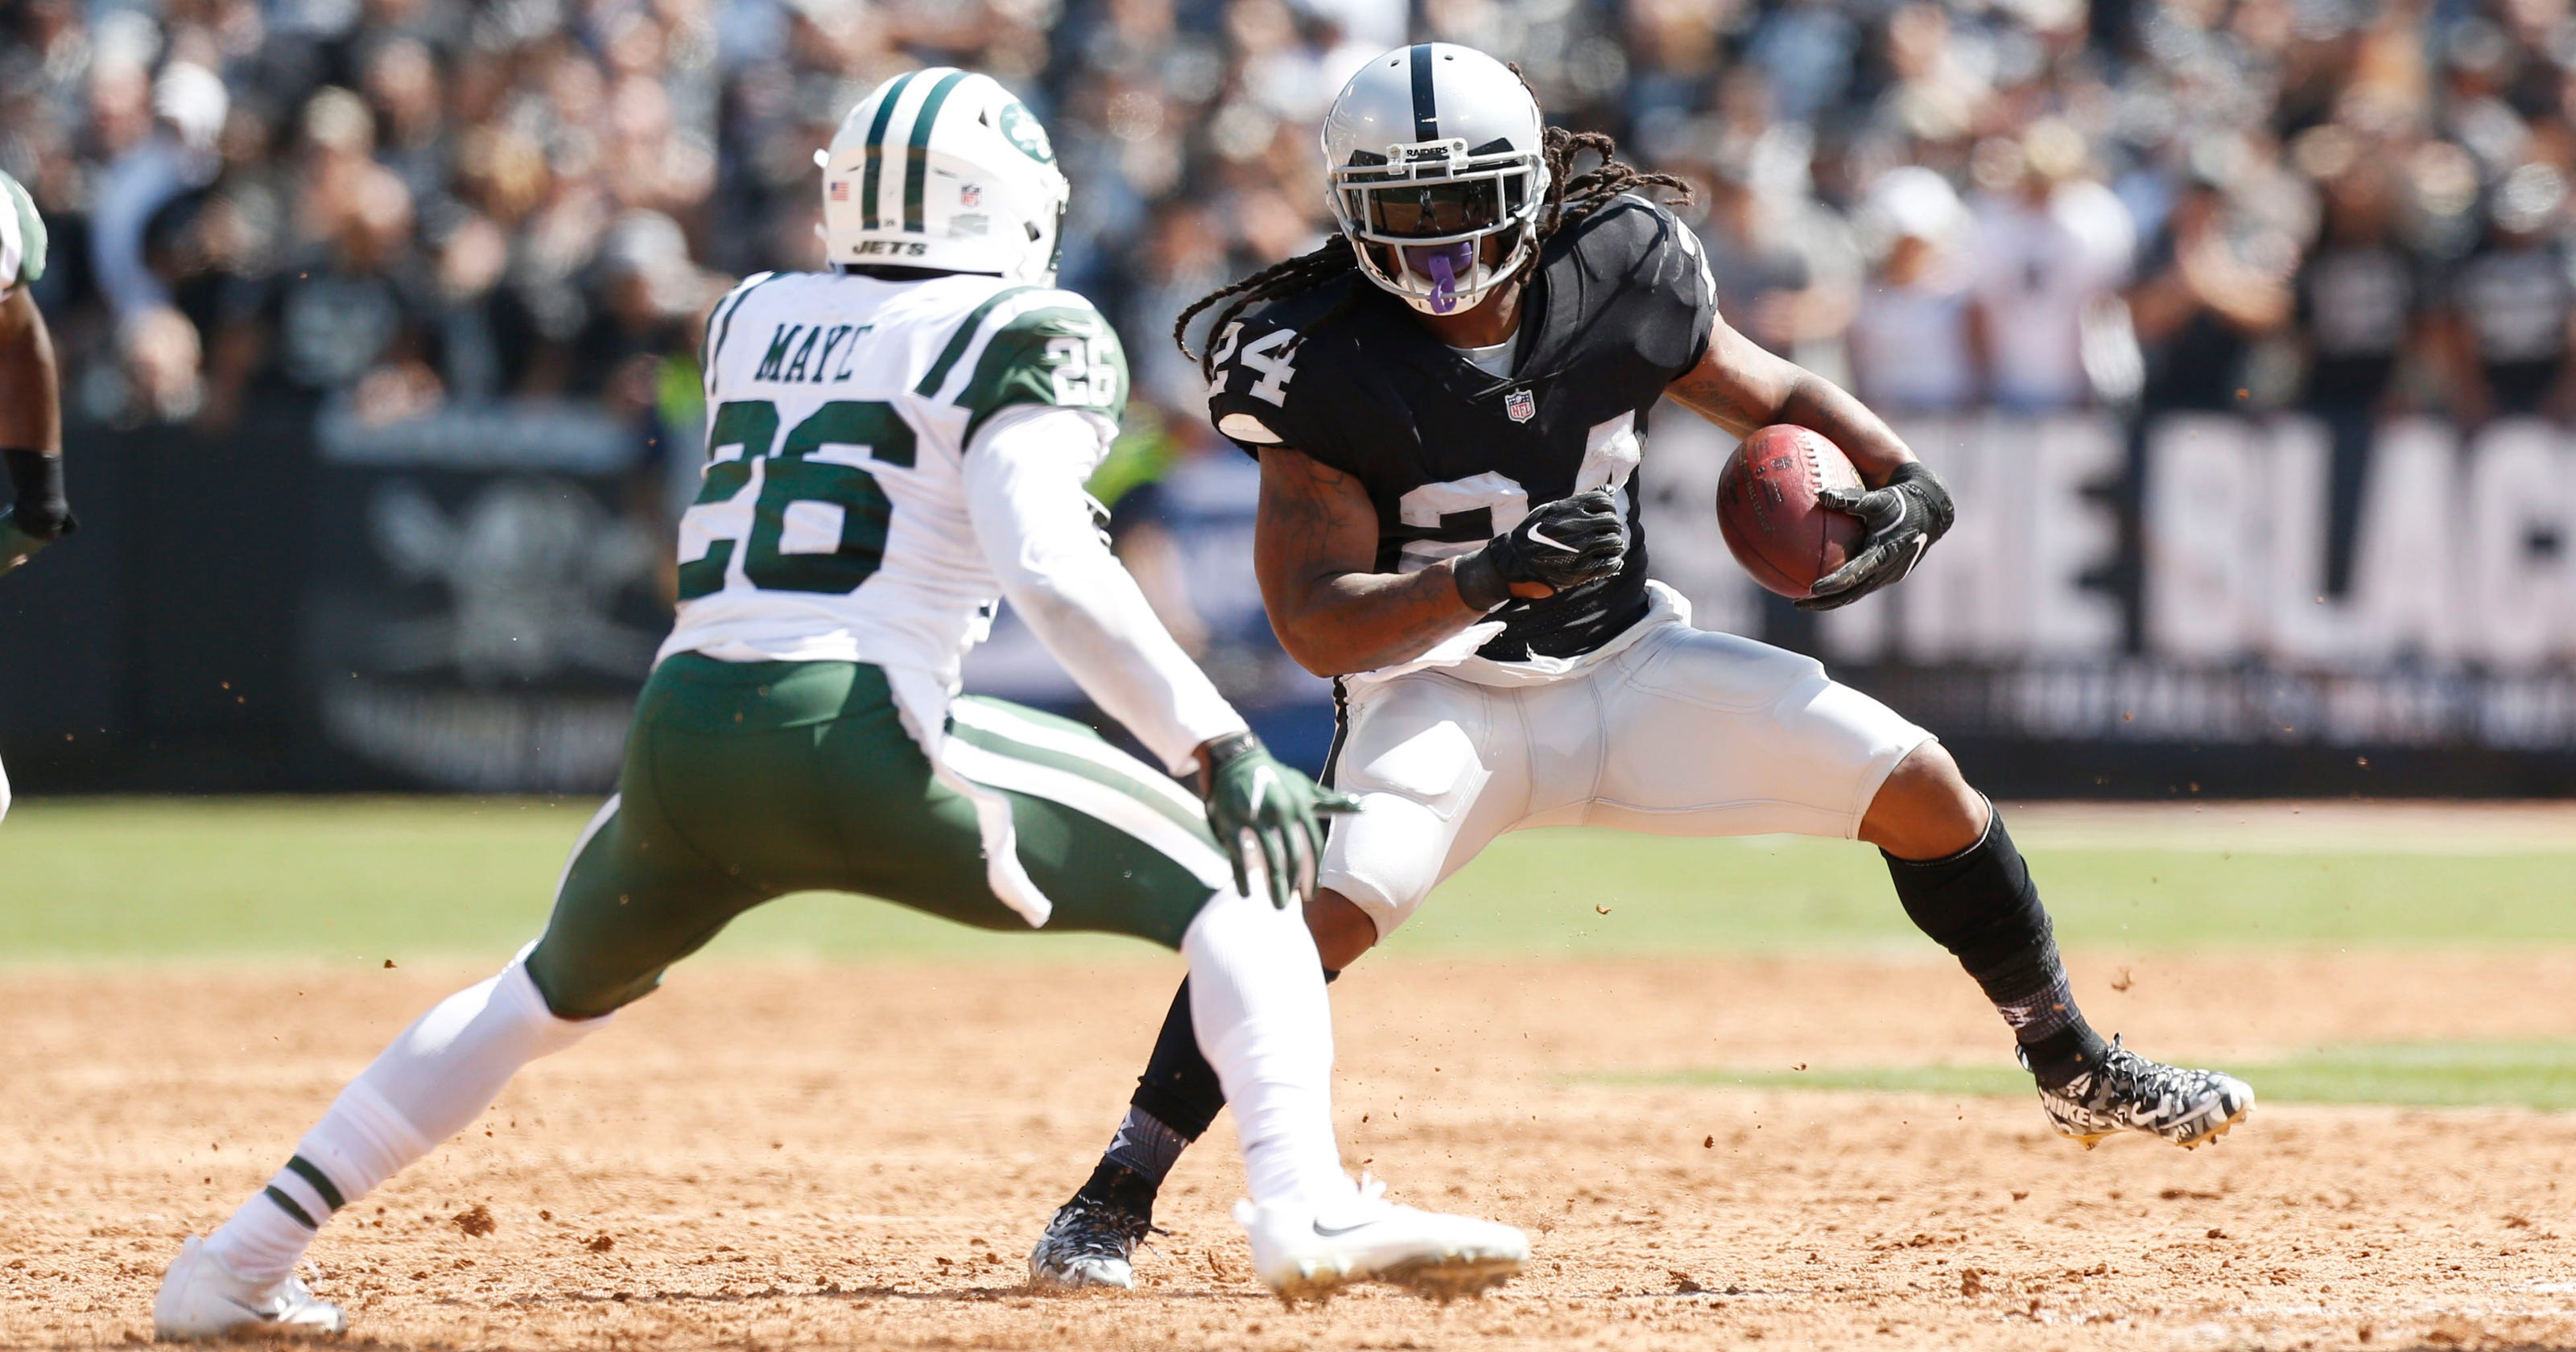 Marshawn Lynch scores in homecoming as Raiders rout Jets 4b4867bdd